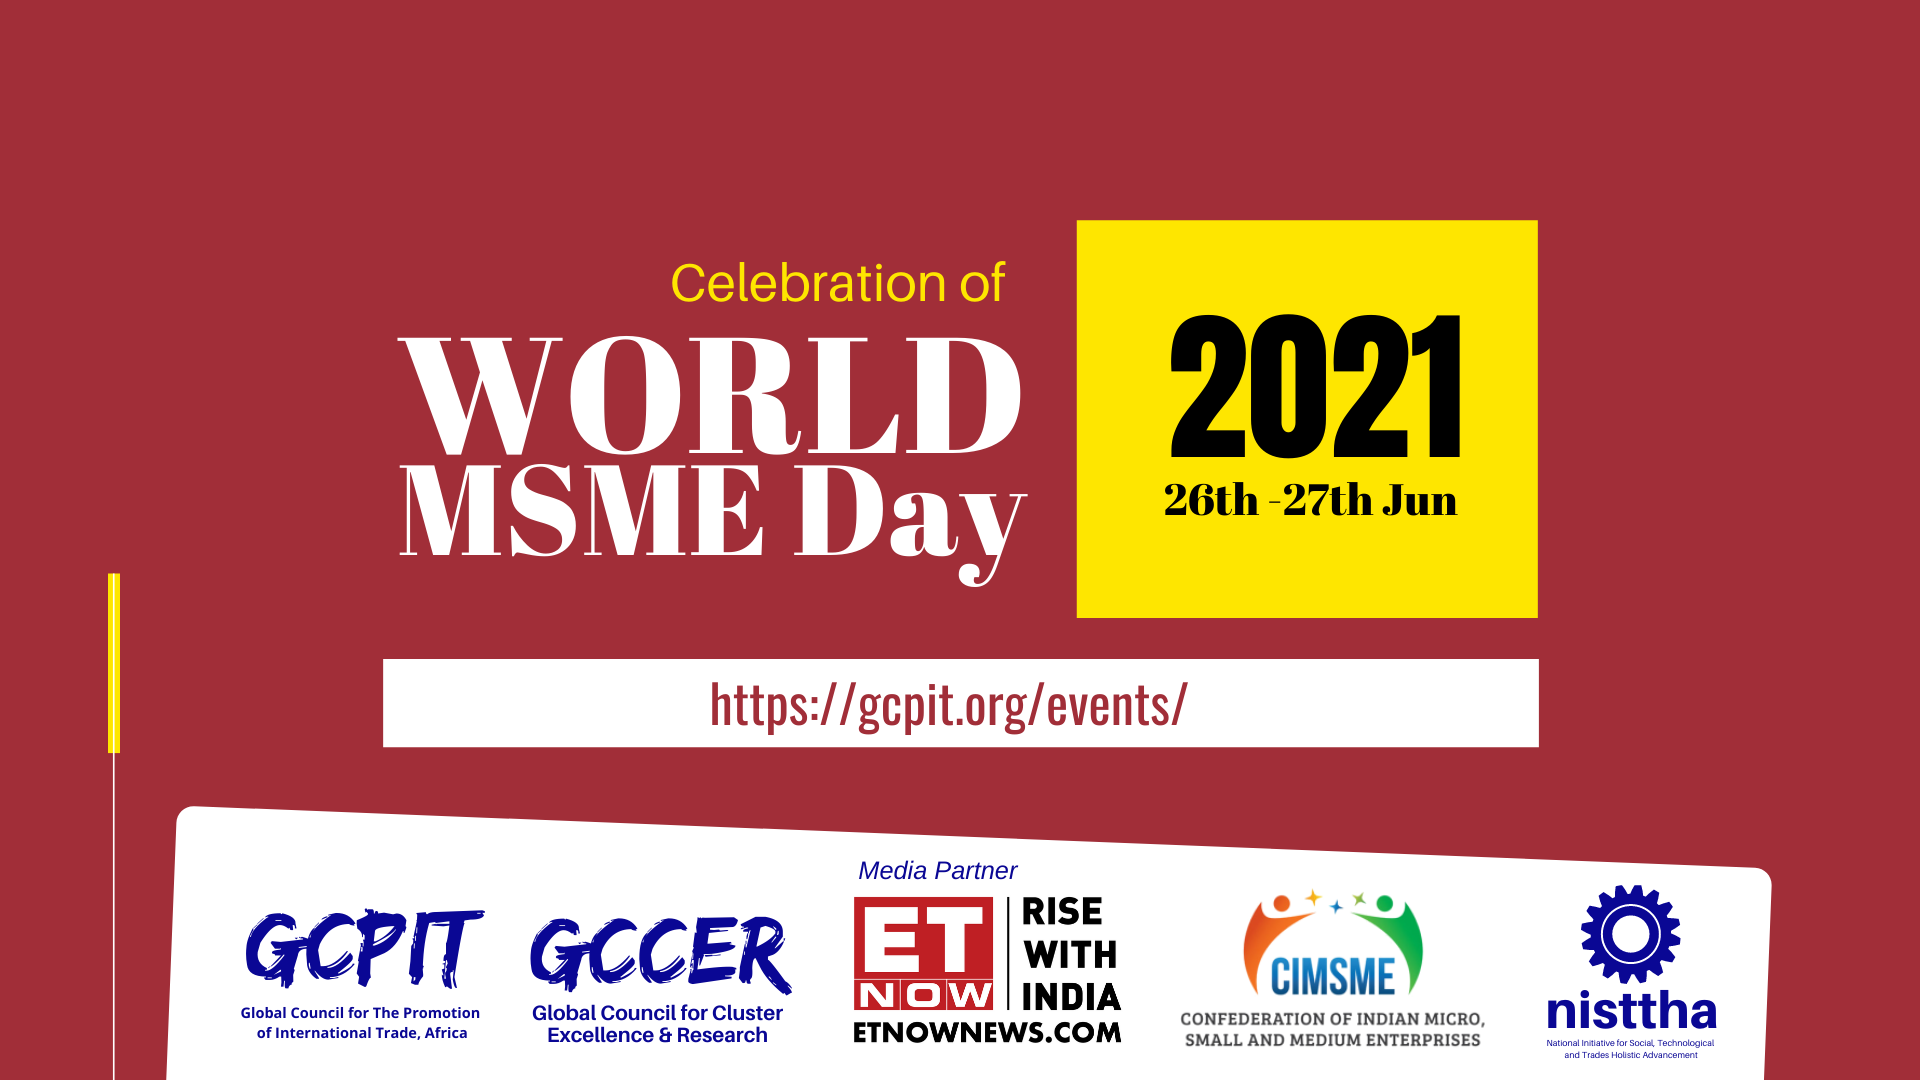 GCPIT Celebrates World MSME Day 2021 to acknowledge the critical role and significant contribution of MSMEs